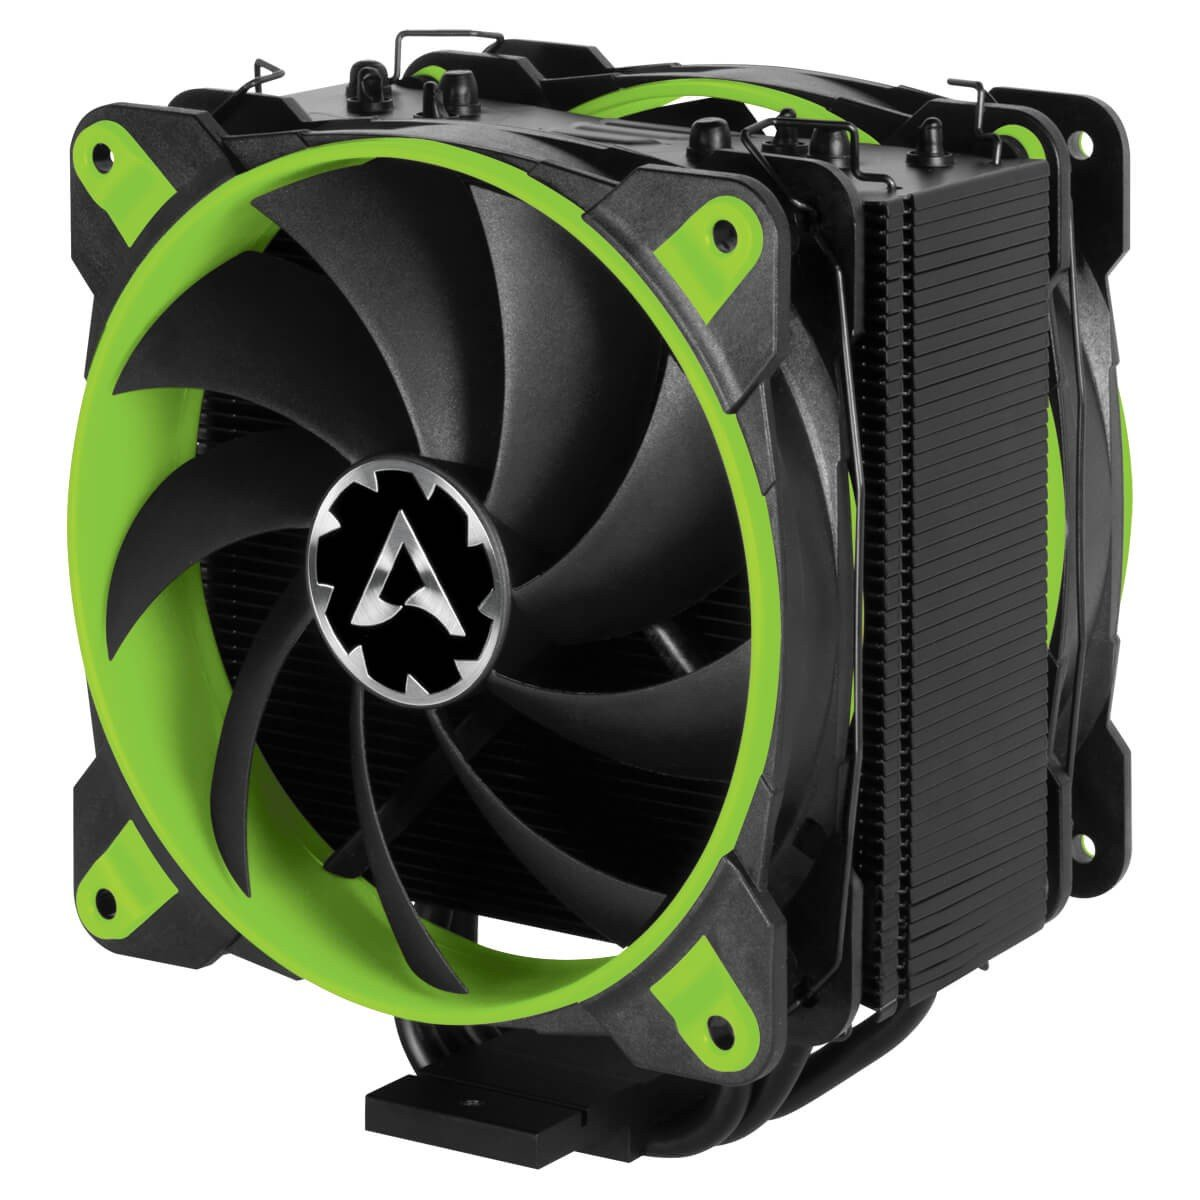 ARCTIC Freezer 33 eSports Edition - Tower CPU Cooler with Push-Pull Configuration I Silent 3-Phase-Motor and wide range of regulation 200 to 1800 RPM I Includes 2 low noise 120 mm fans - Green